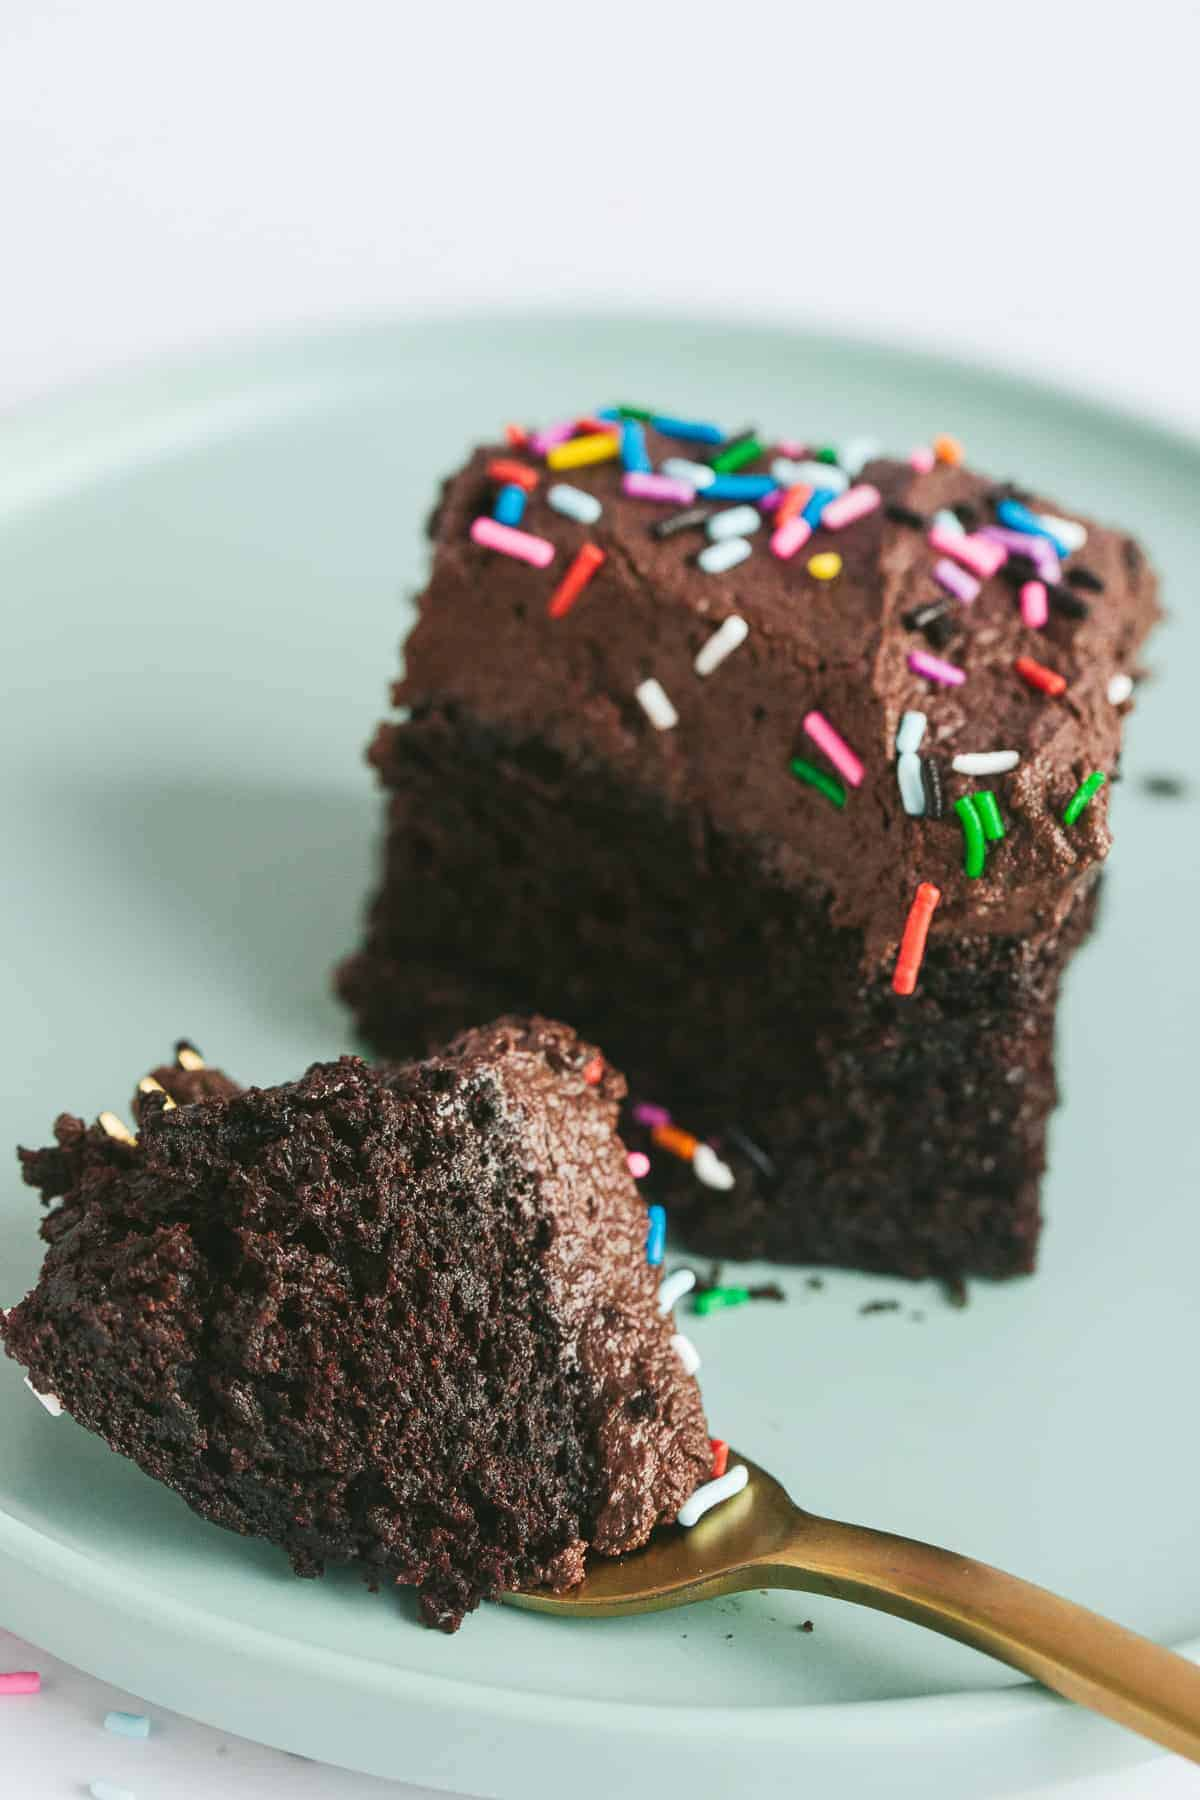 A slice of chocolate cake covered with chocolate buttercream.